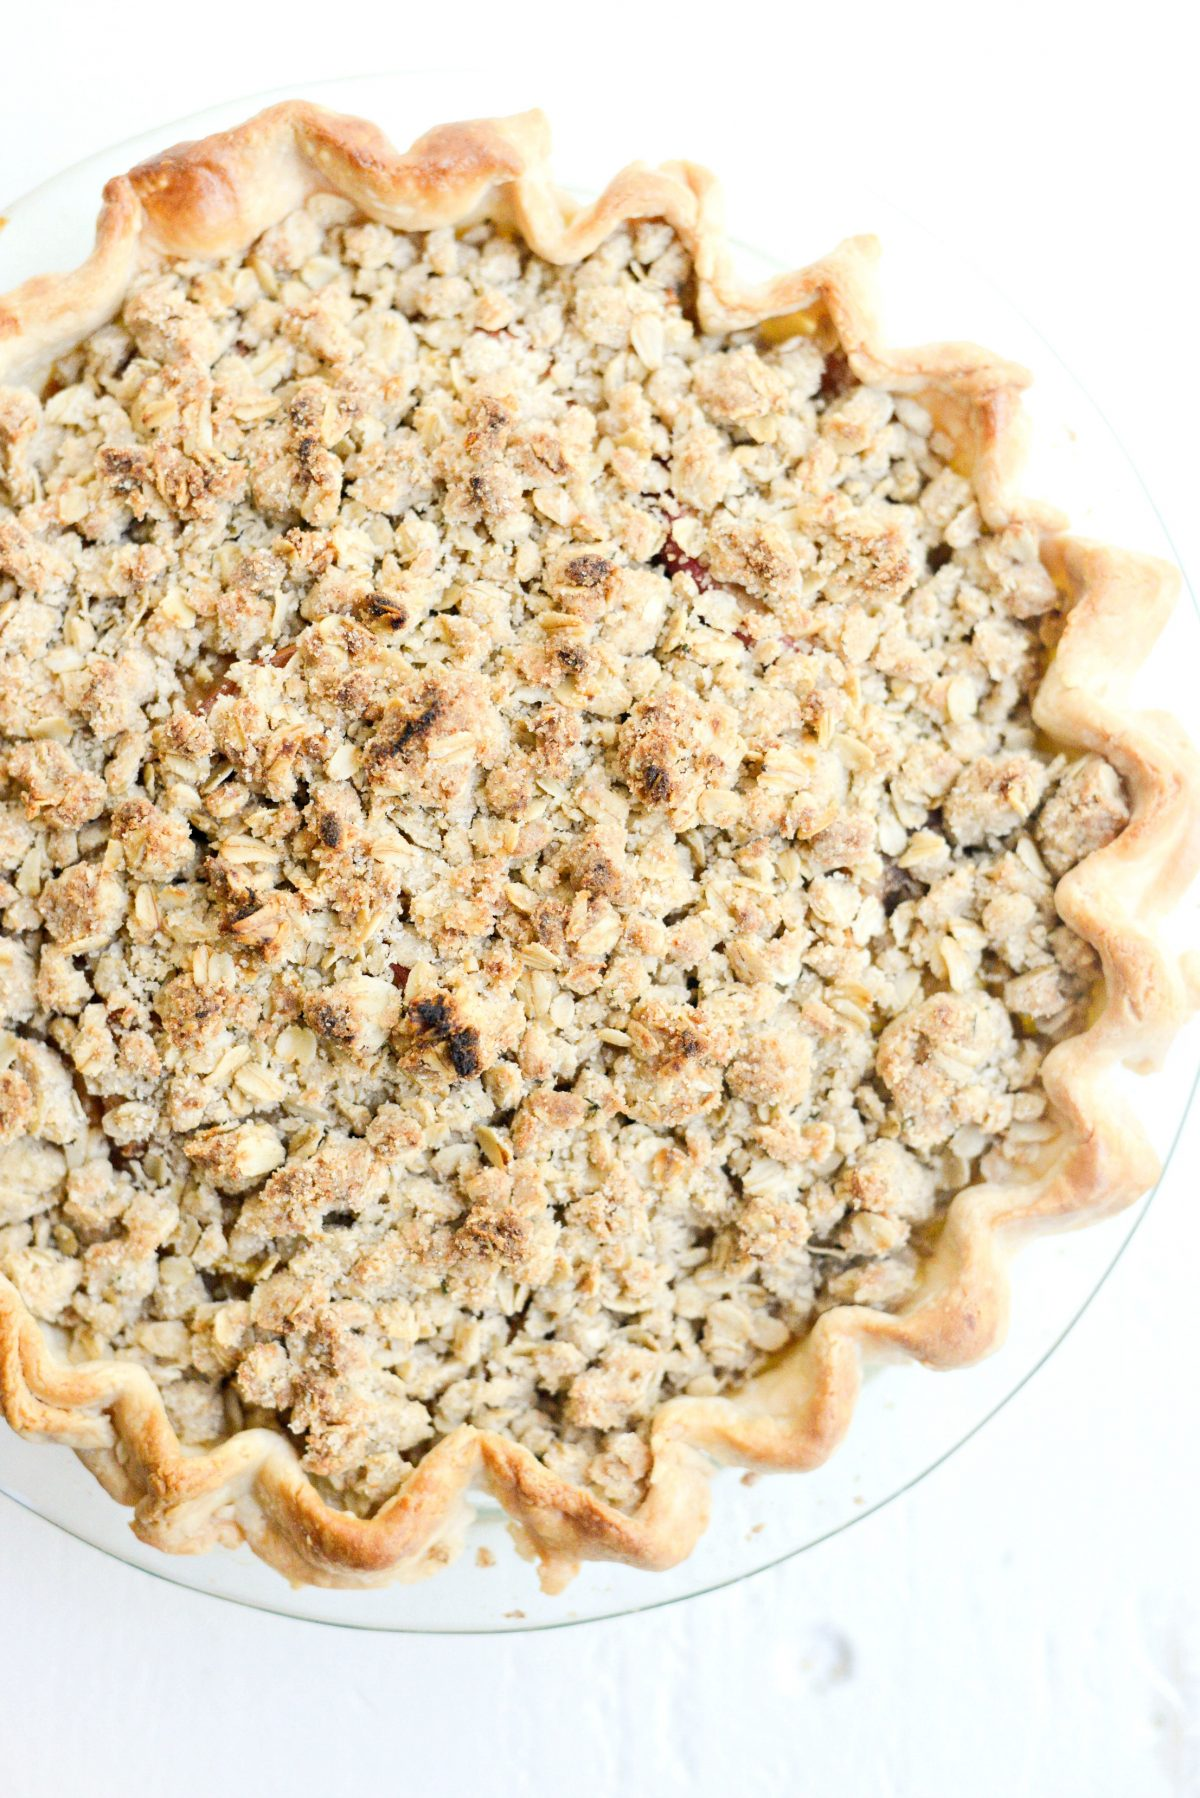 Rustic Brown Sugar Apple Pie with Oatmeal Thyme Crumble l SimplyScratch.com